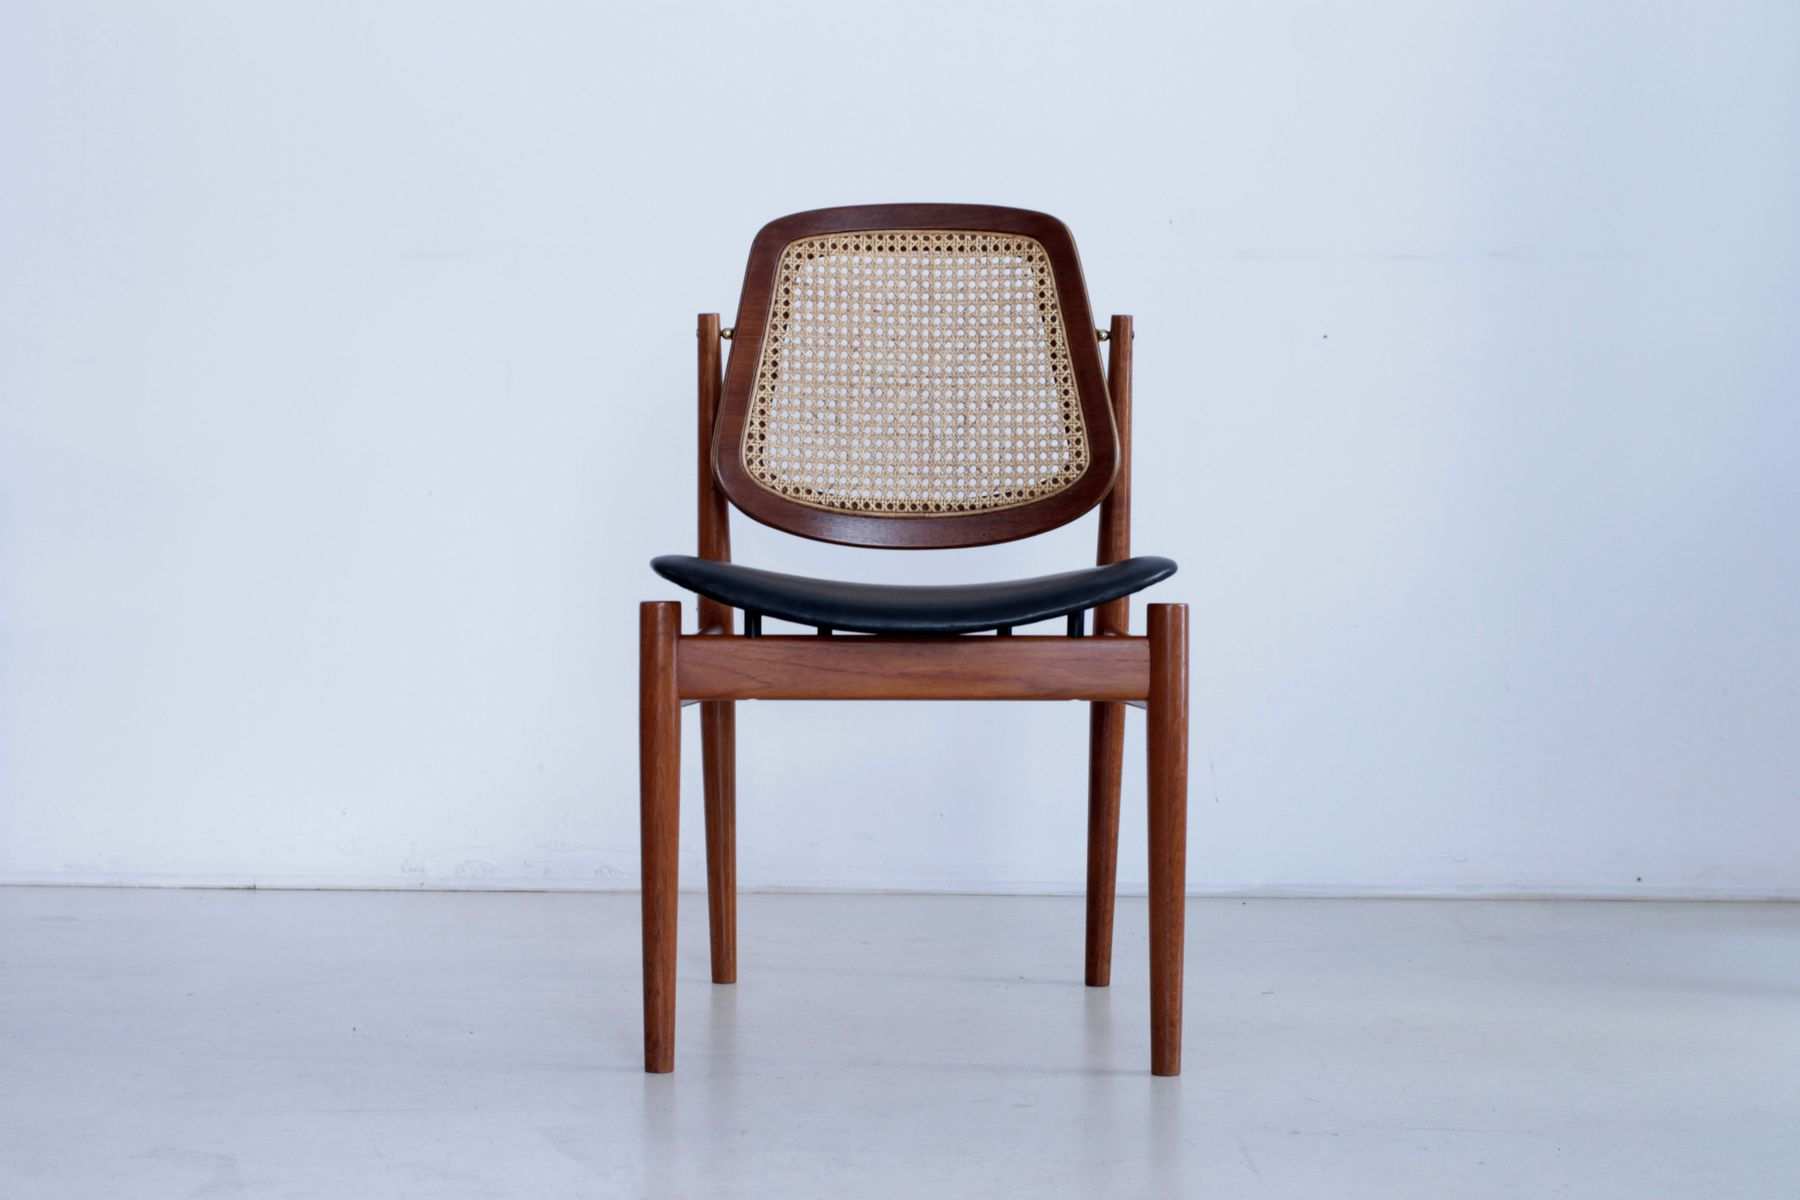 Danish Chairs By Arne Vodder For France & S N,